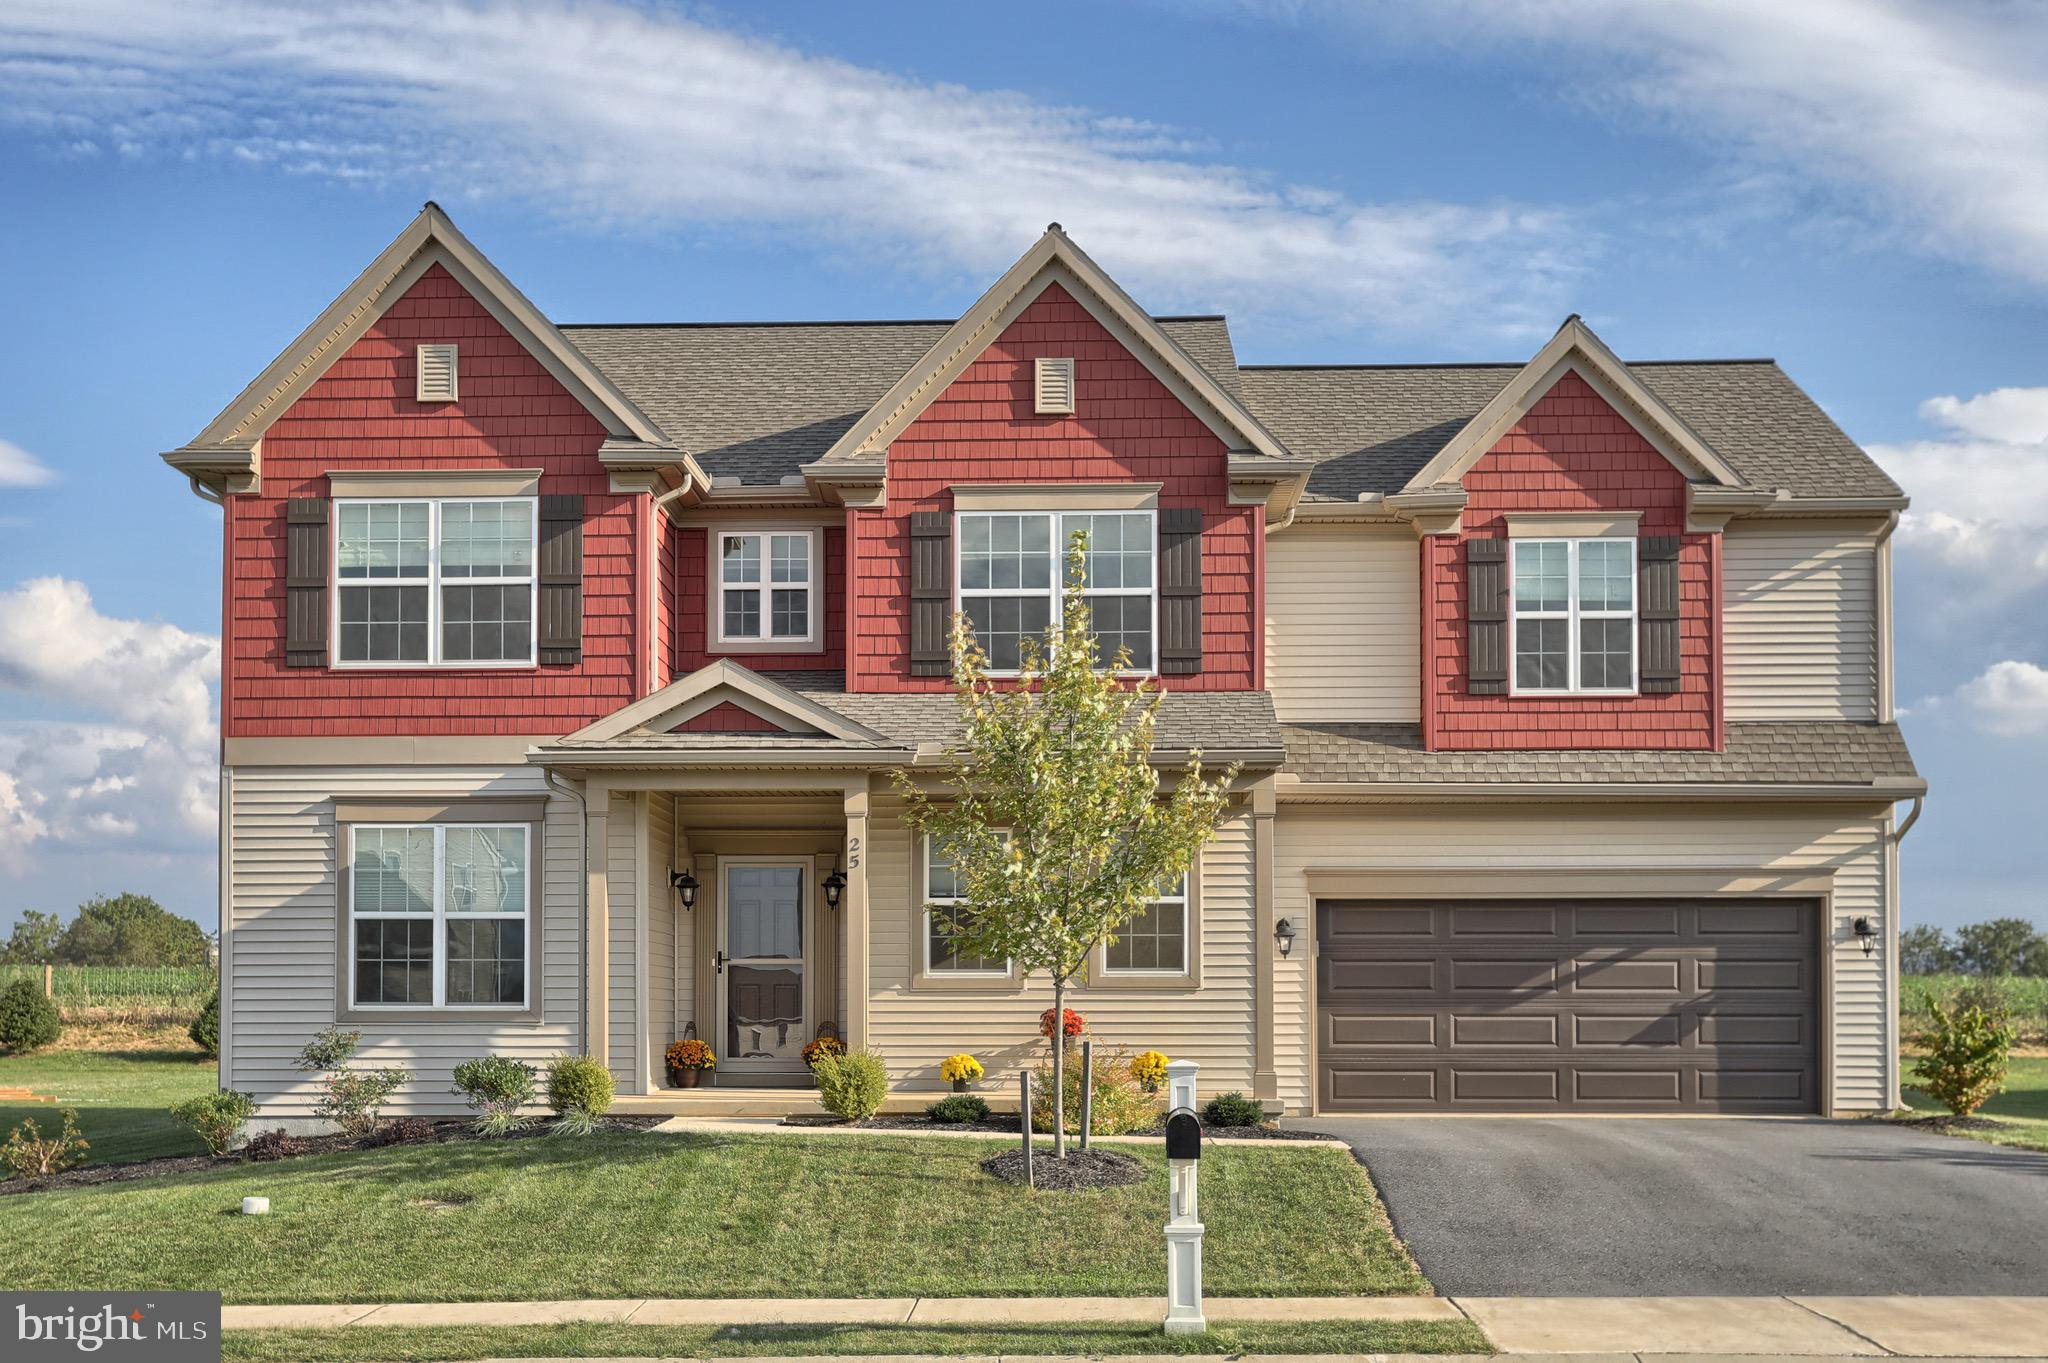 25 BLUE JAY WAY, ANNVILLE, PA 17003